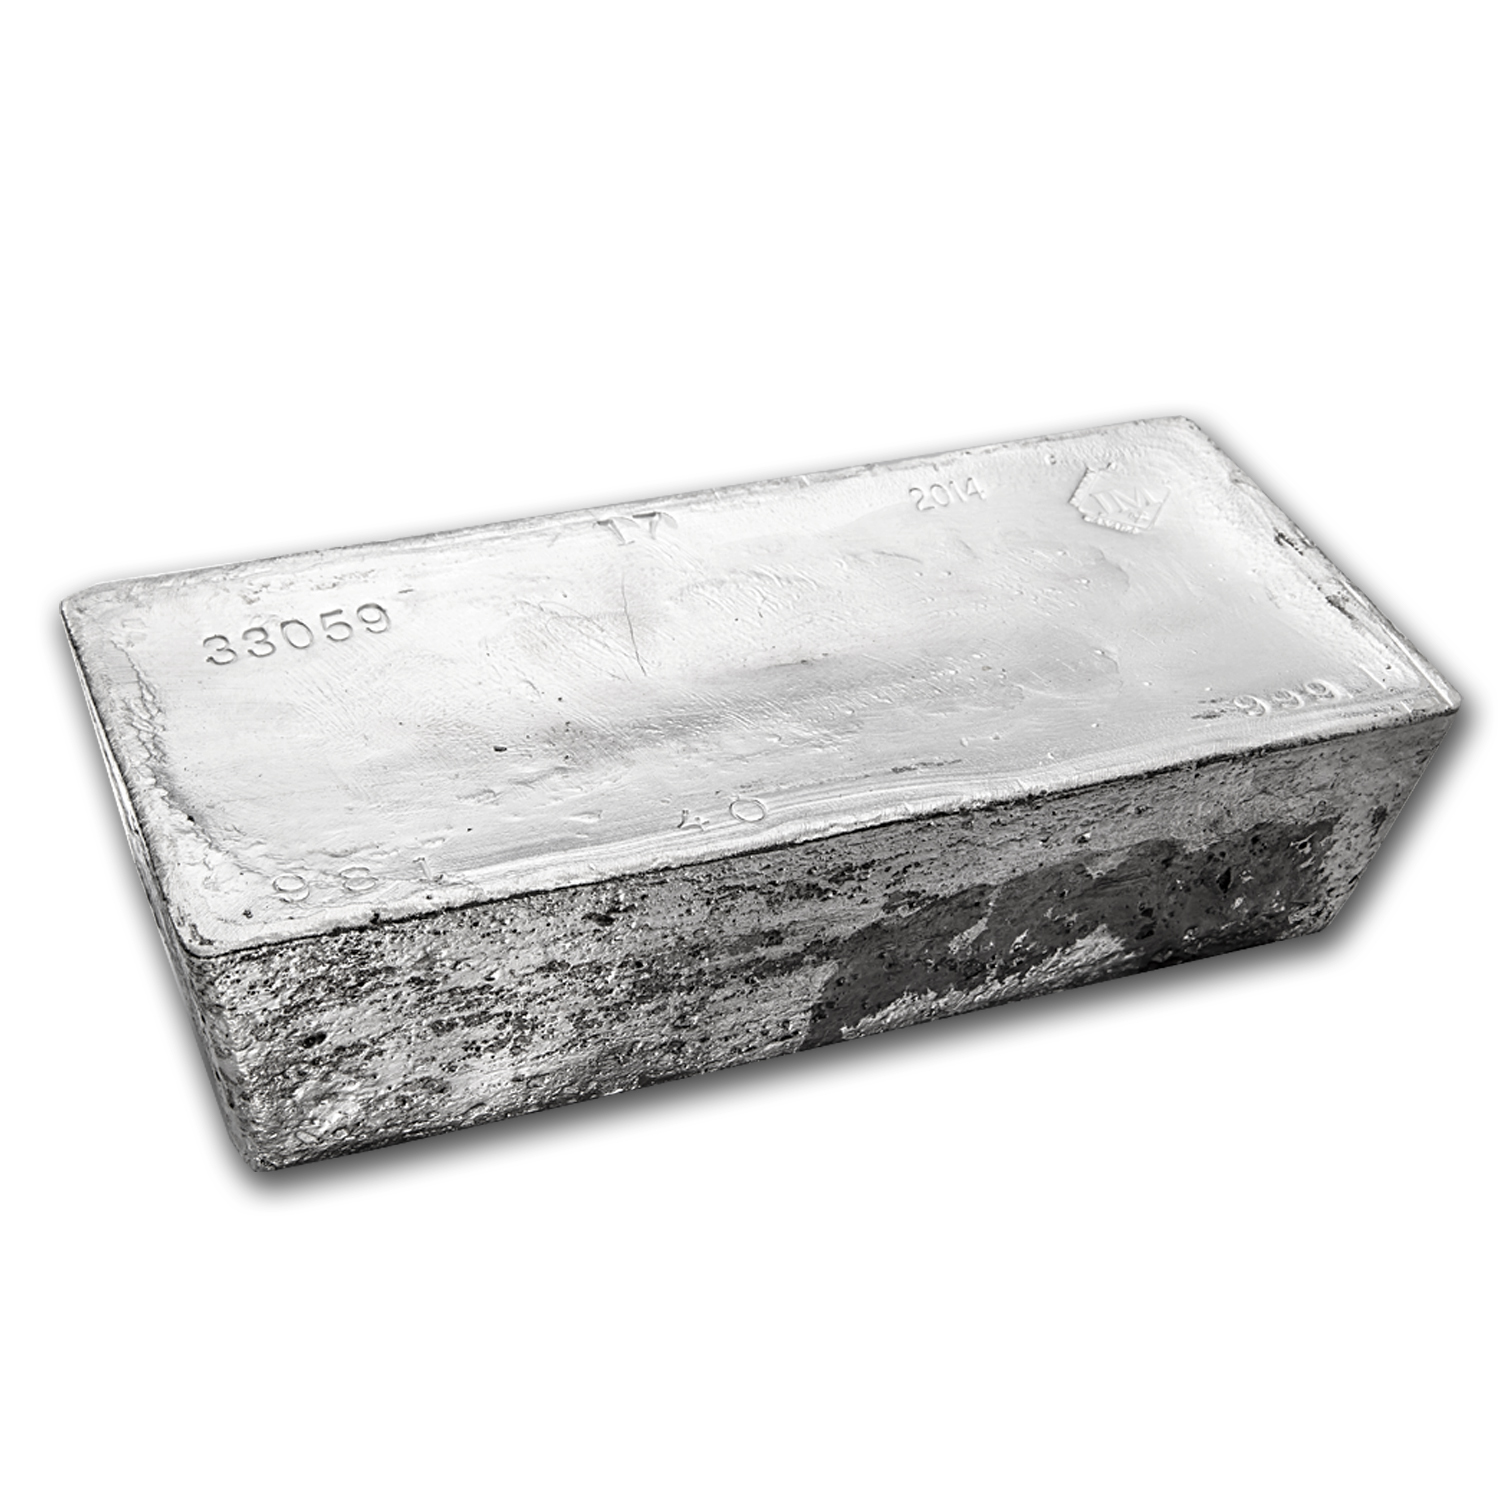 976.6 oz Silver Bar - Johnson Matthey (#3796406)